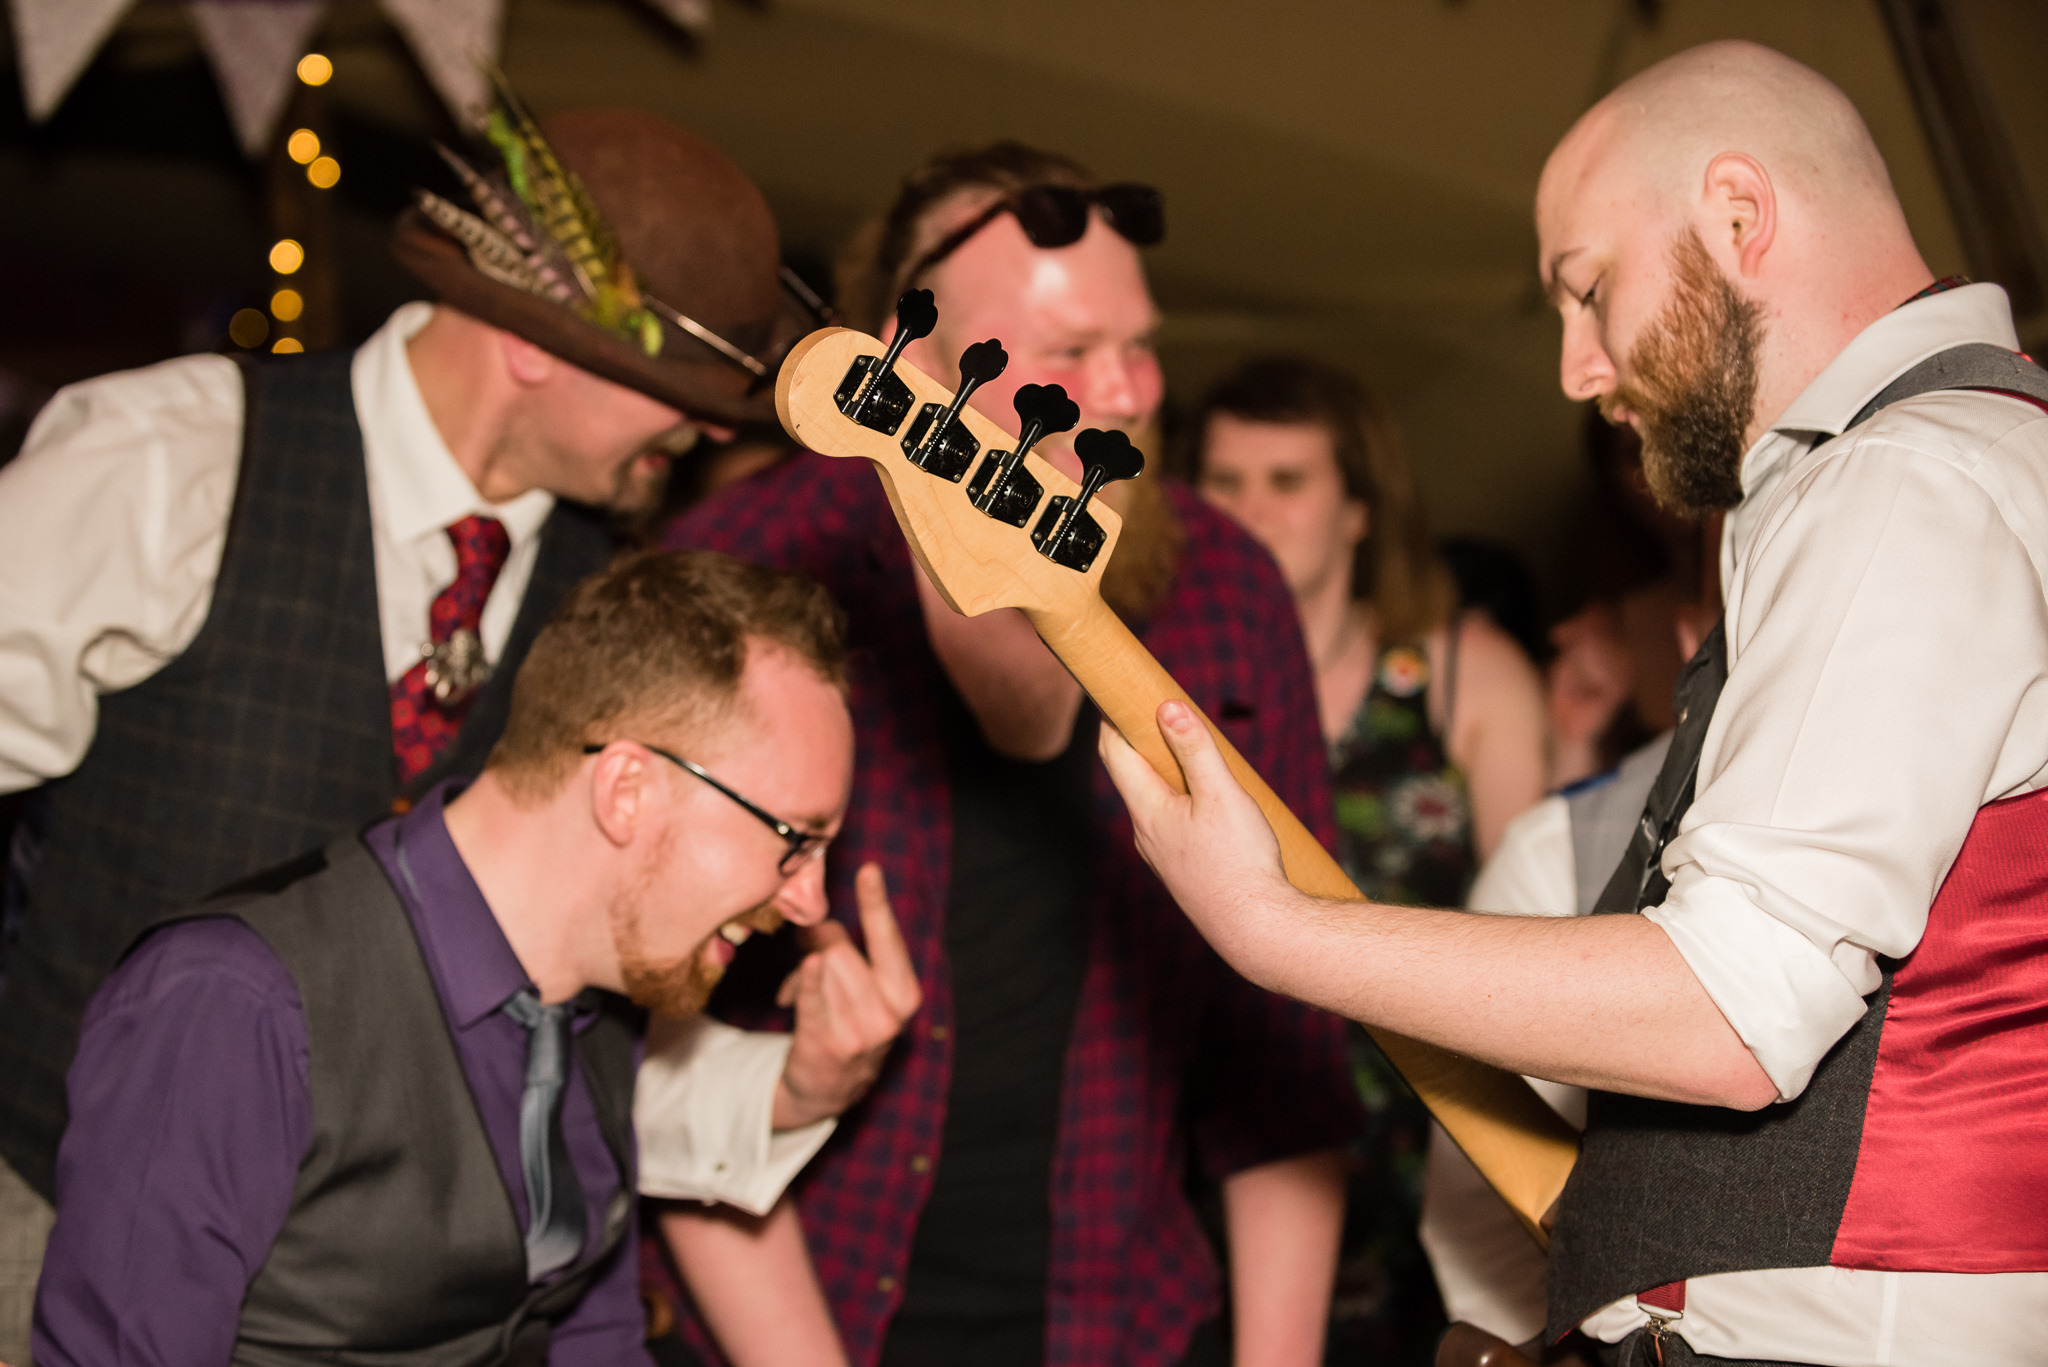 The groom on the guitar during his tipi wedding reception